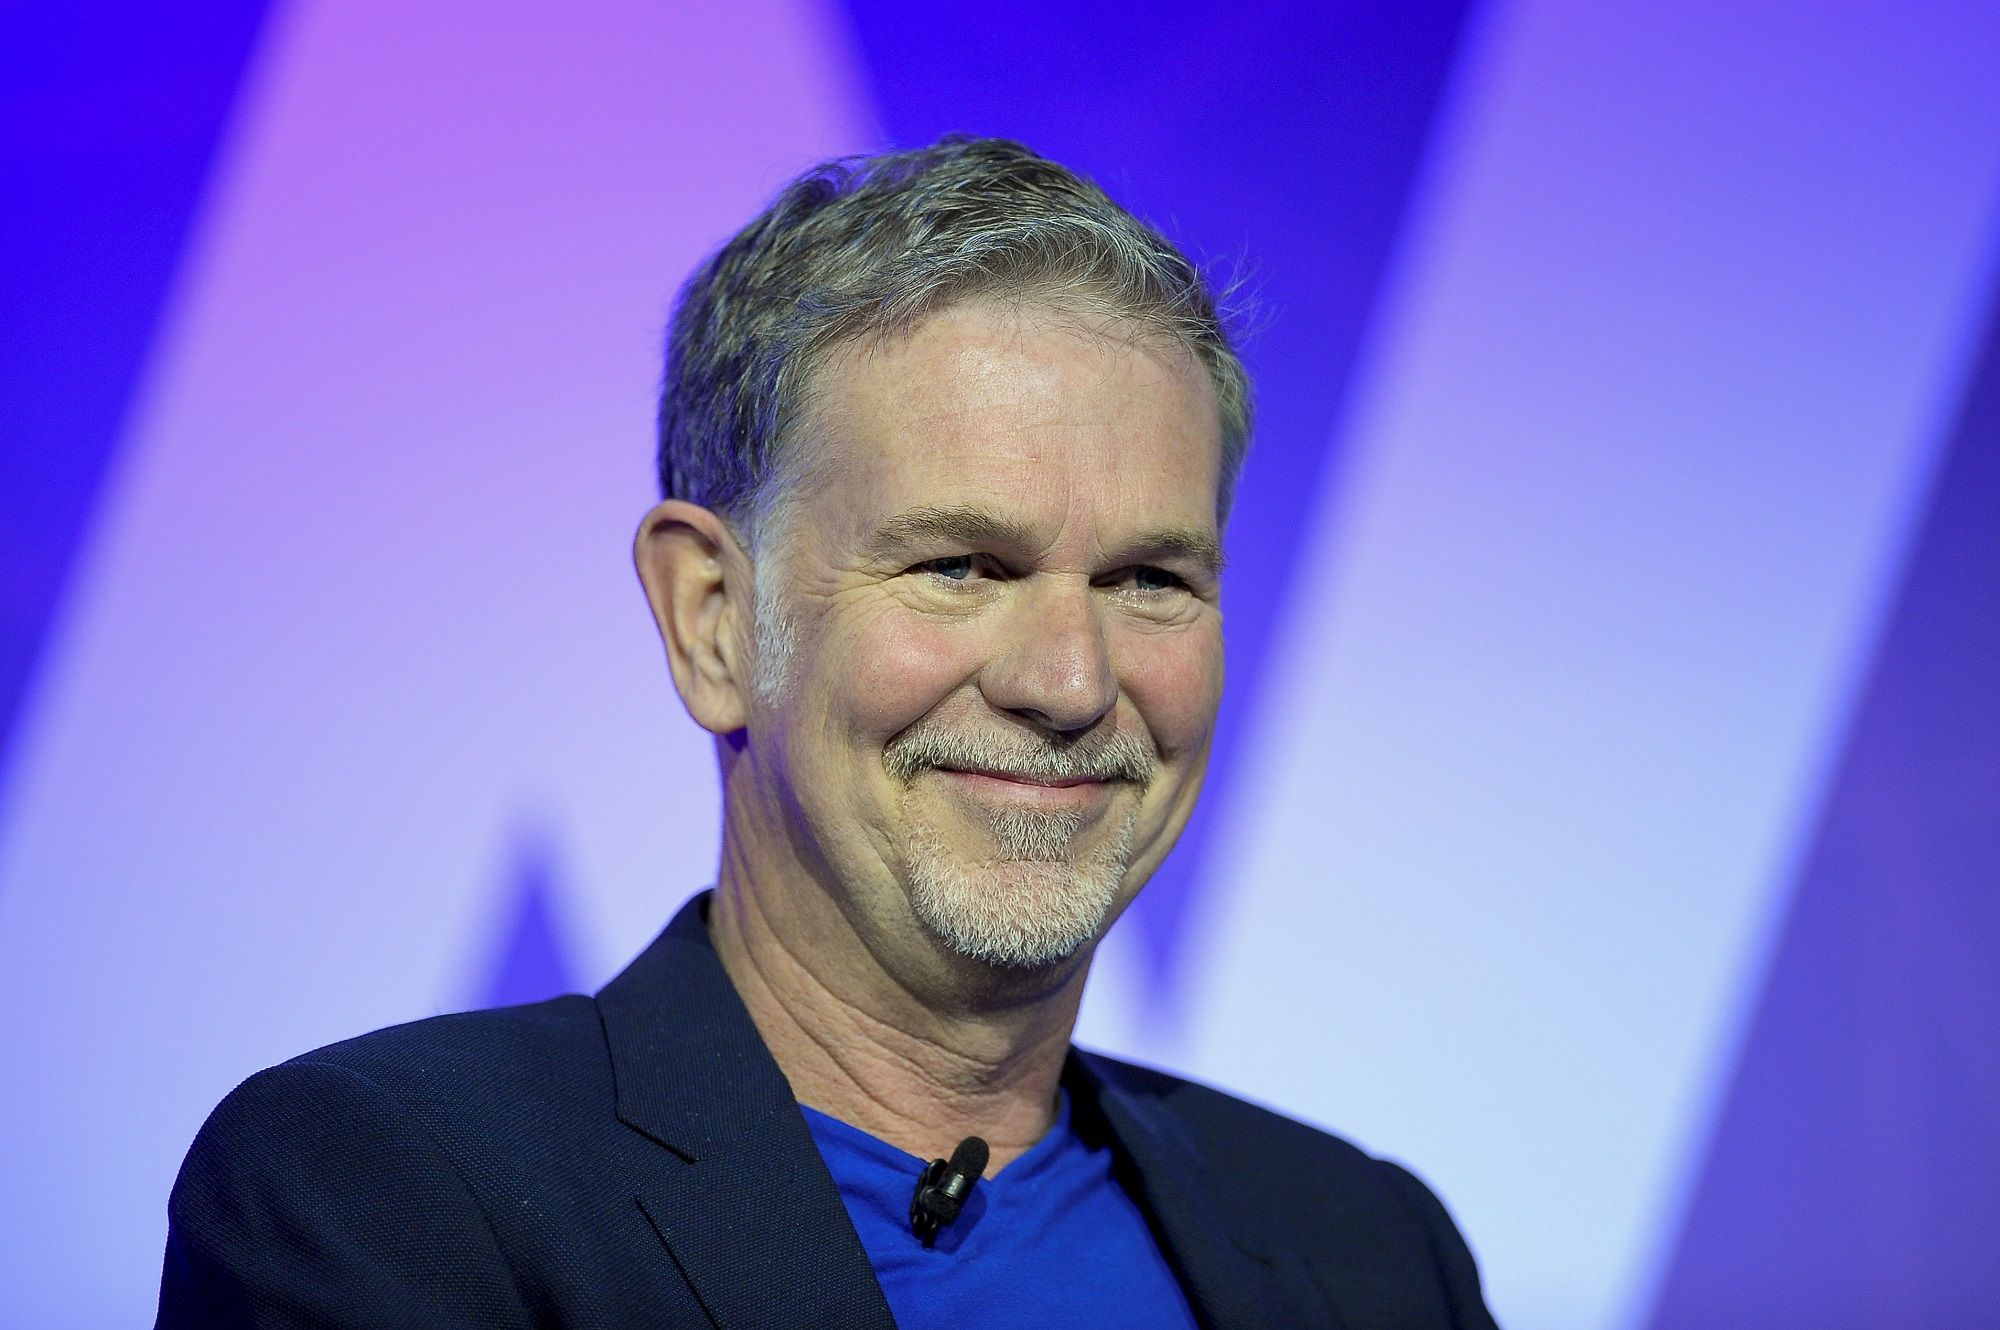 Buy Netflix stock for 'unstoppable lead' in streaming